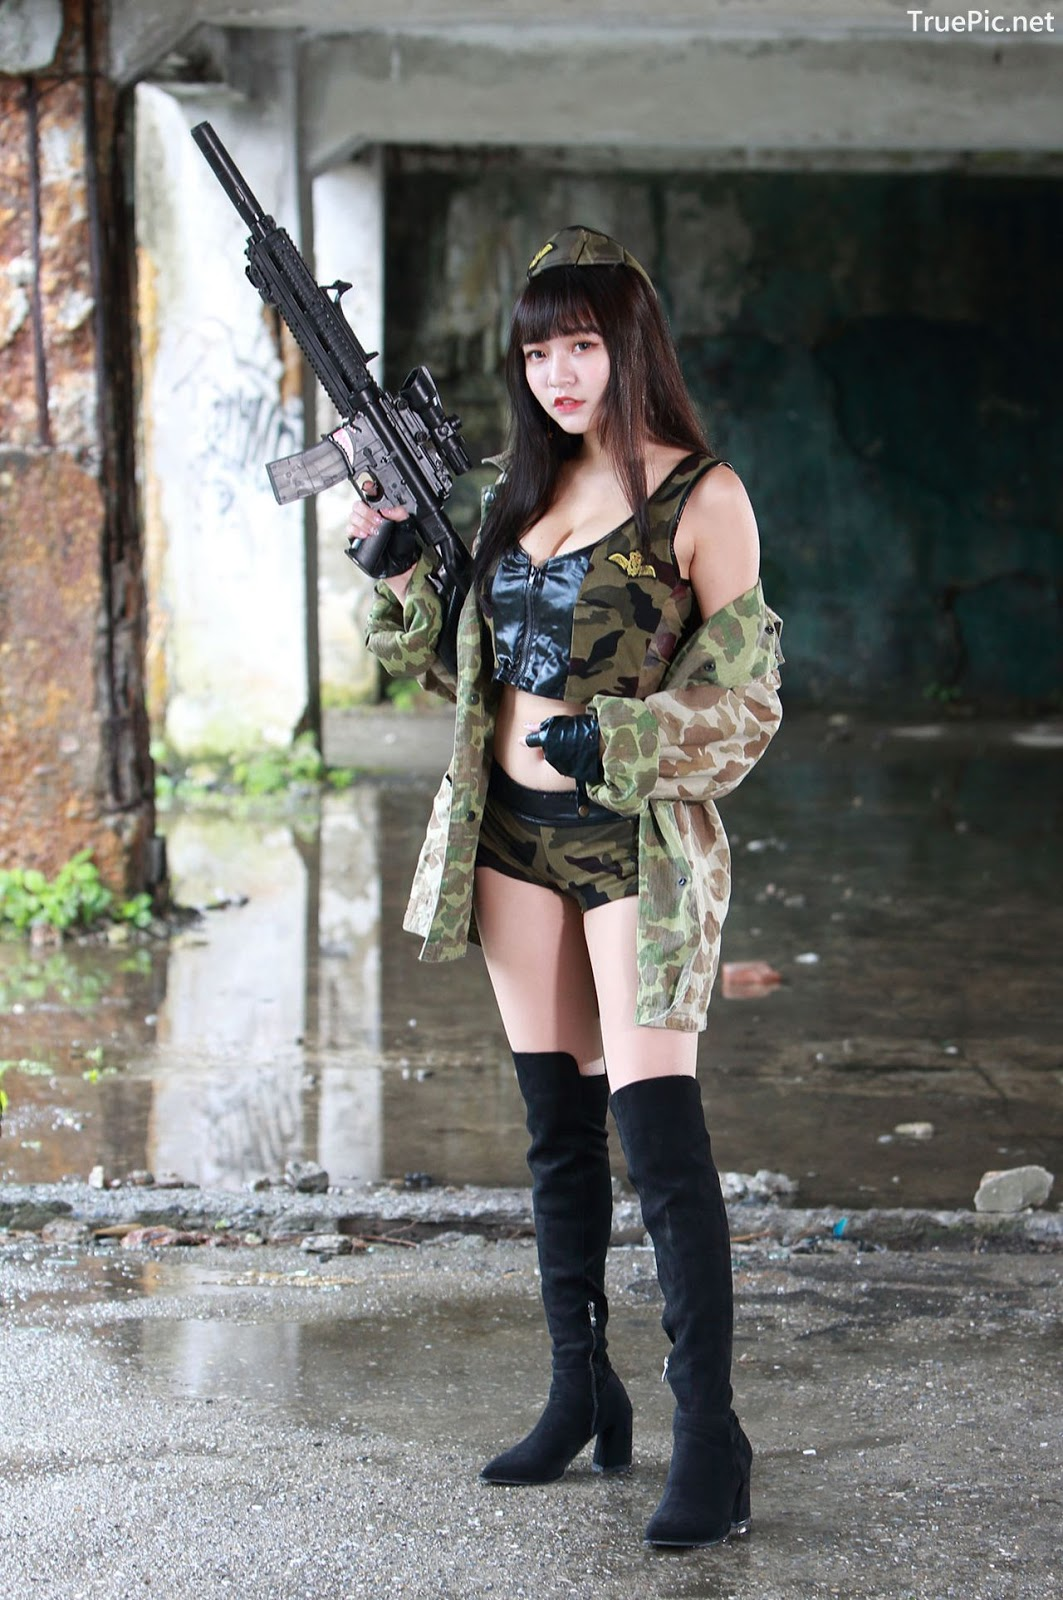 Image-Pretty-Taiwanese-Girl-林襄-Beautiful-And-Sexy-Warrior-Girl-TruePic.net- Picture-1